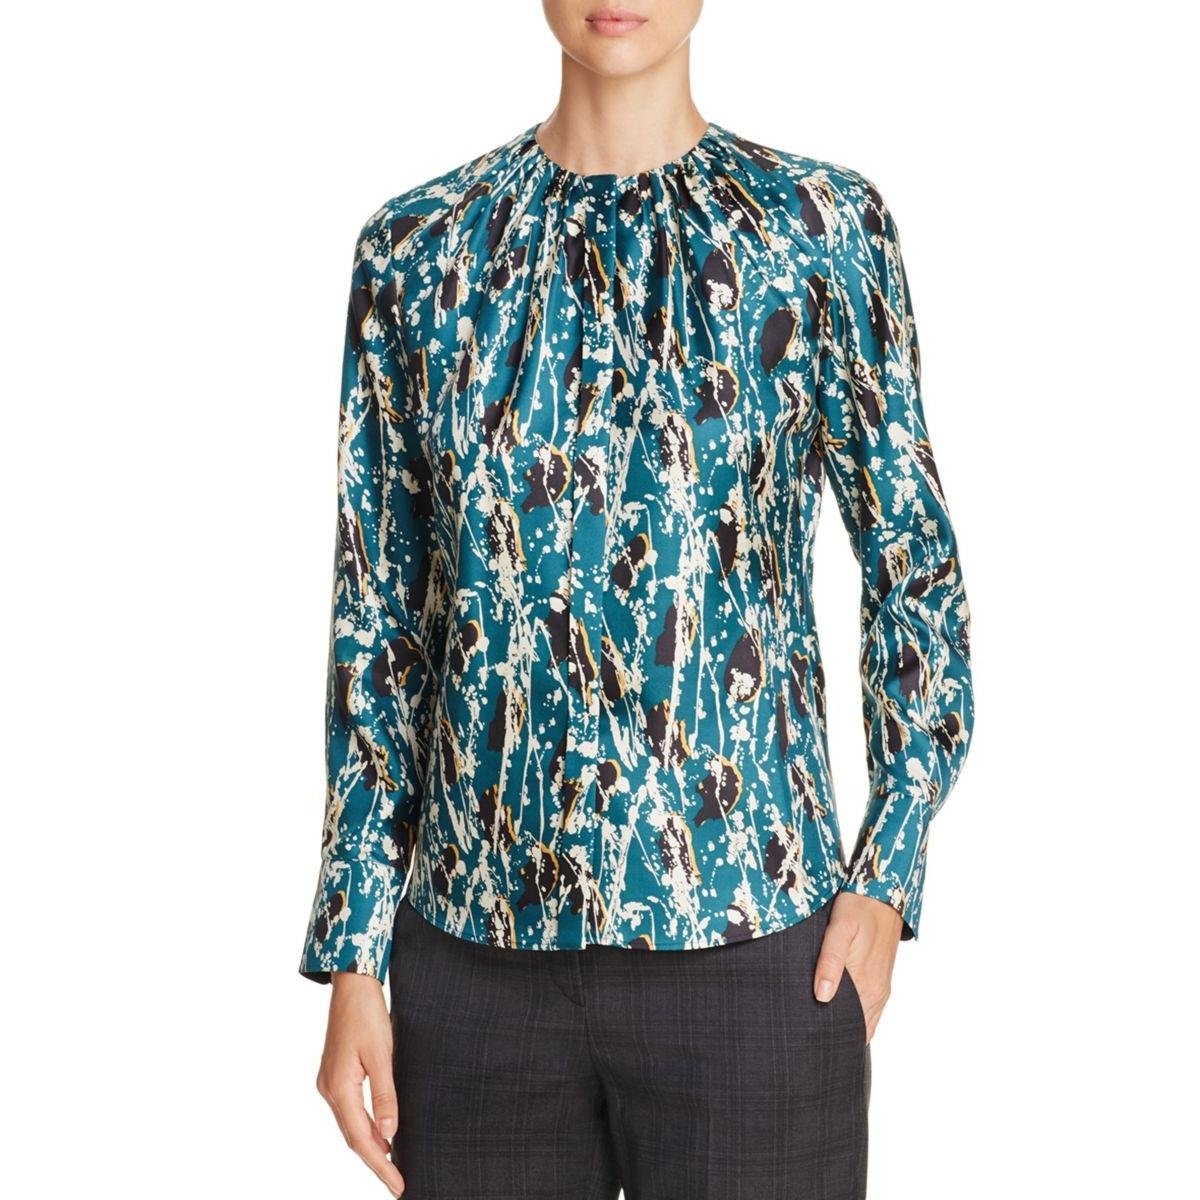 BOSS Hugo Boss Womens Silk Printed Blouse Multi 10